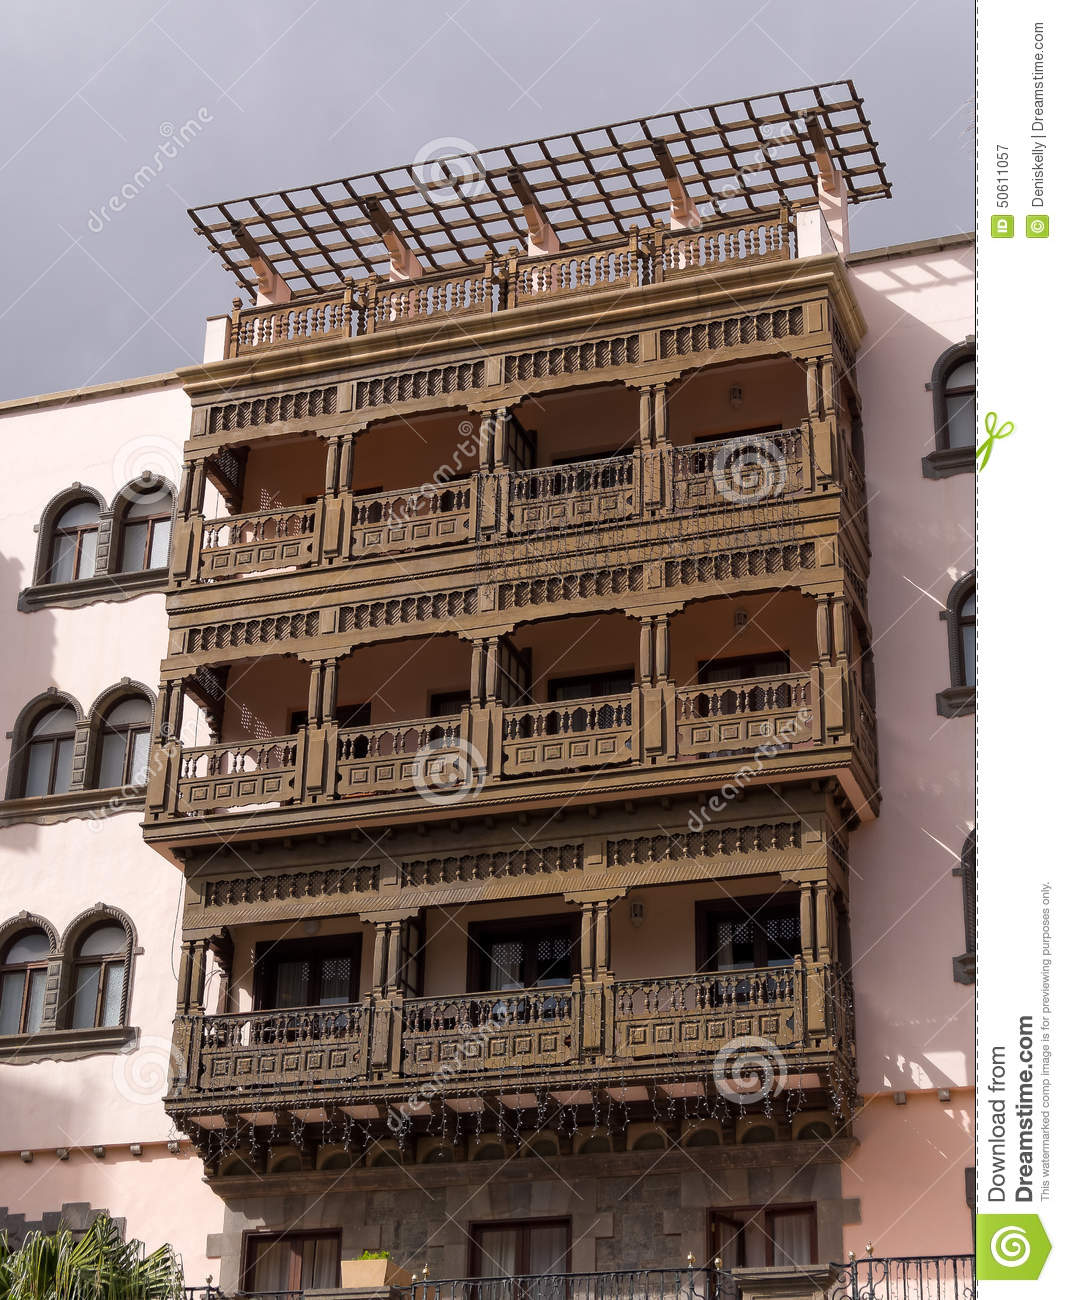 Wooden balcony in gran canaria spain stock image image for Balcony in spanish